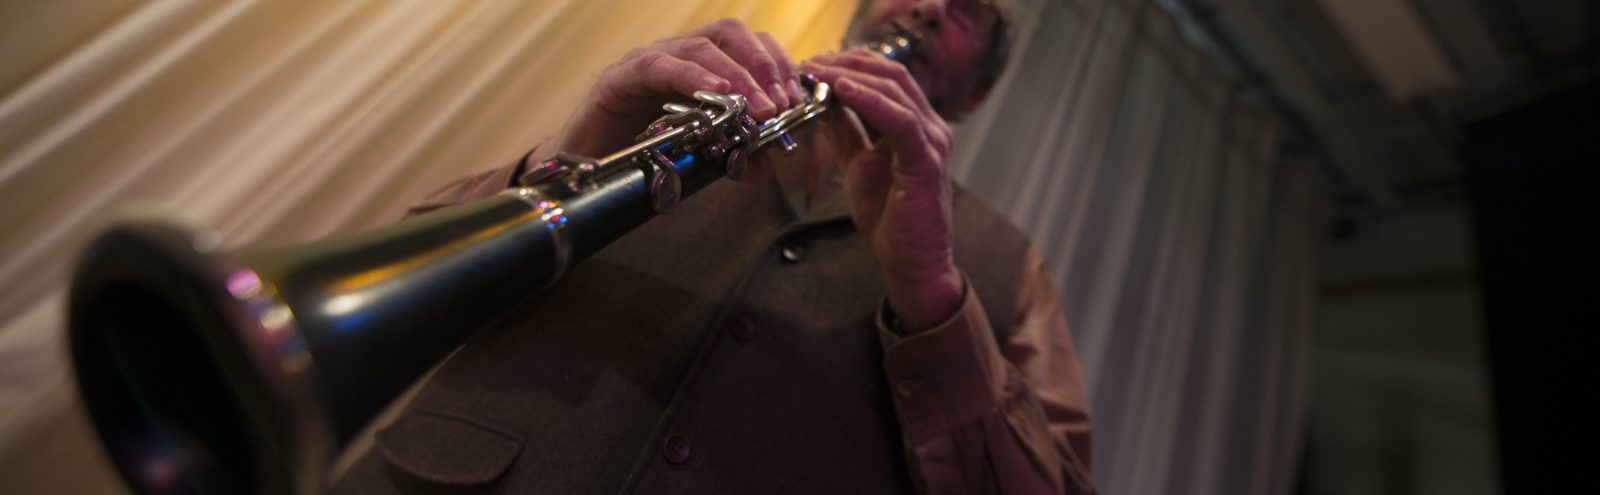 Northland College Professor Joel Glickman plays clarinet